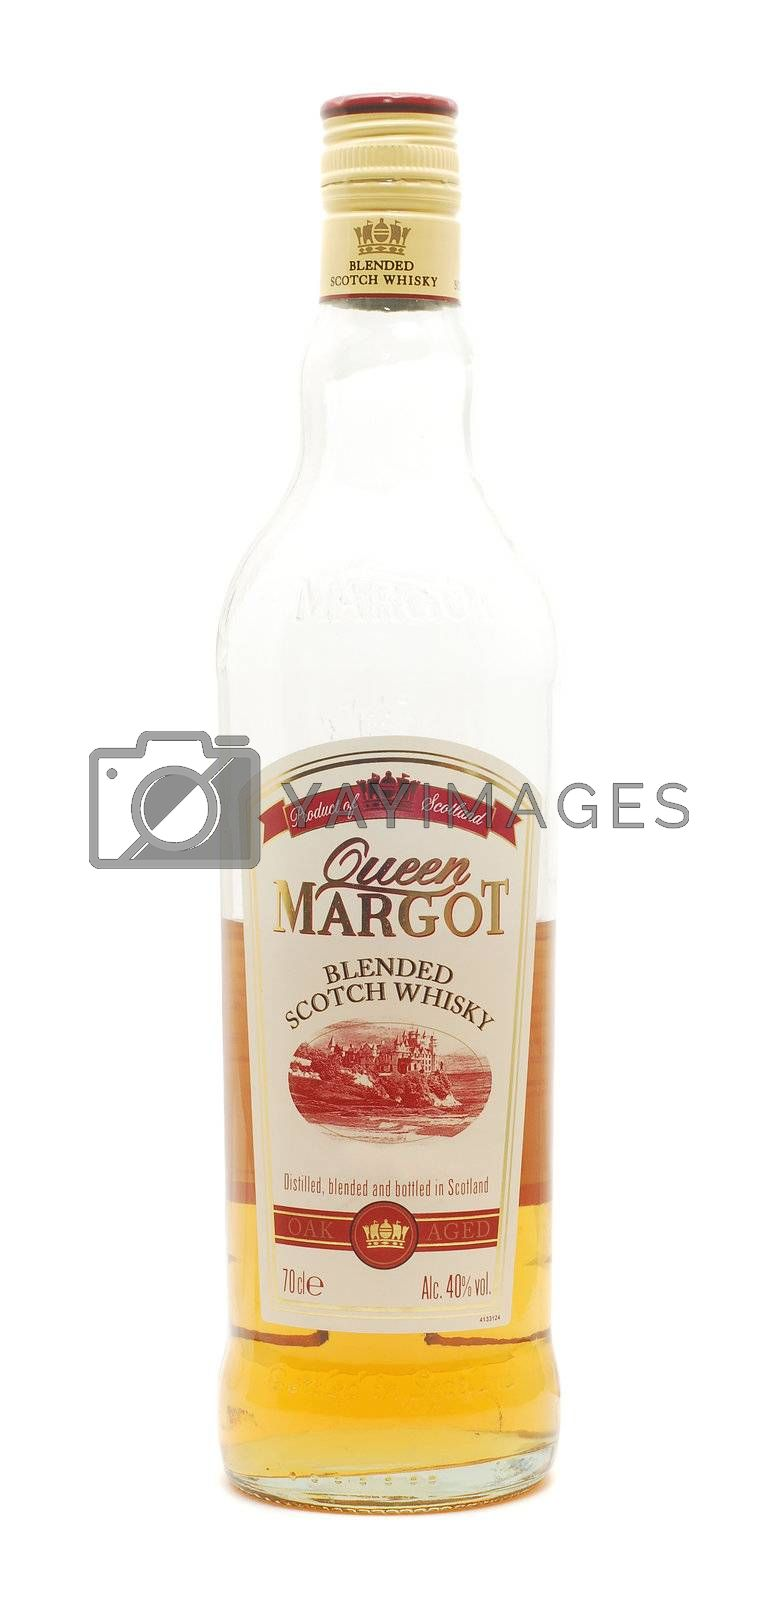 Caransebes, Romania, September 15, 2012 - Queen Margot scotch whisky bottle isolated on white